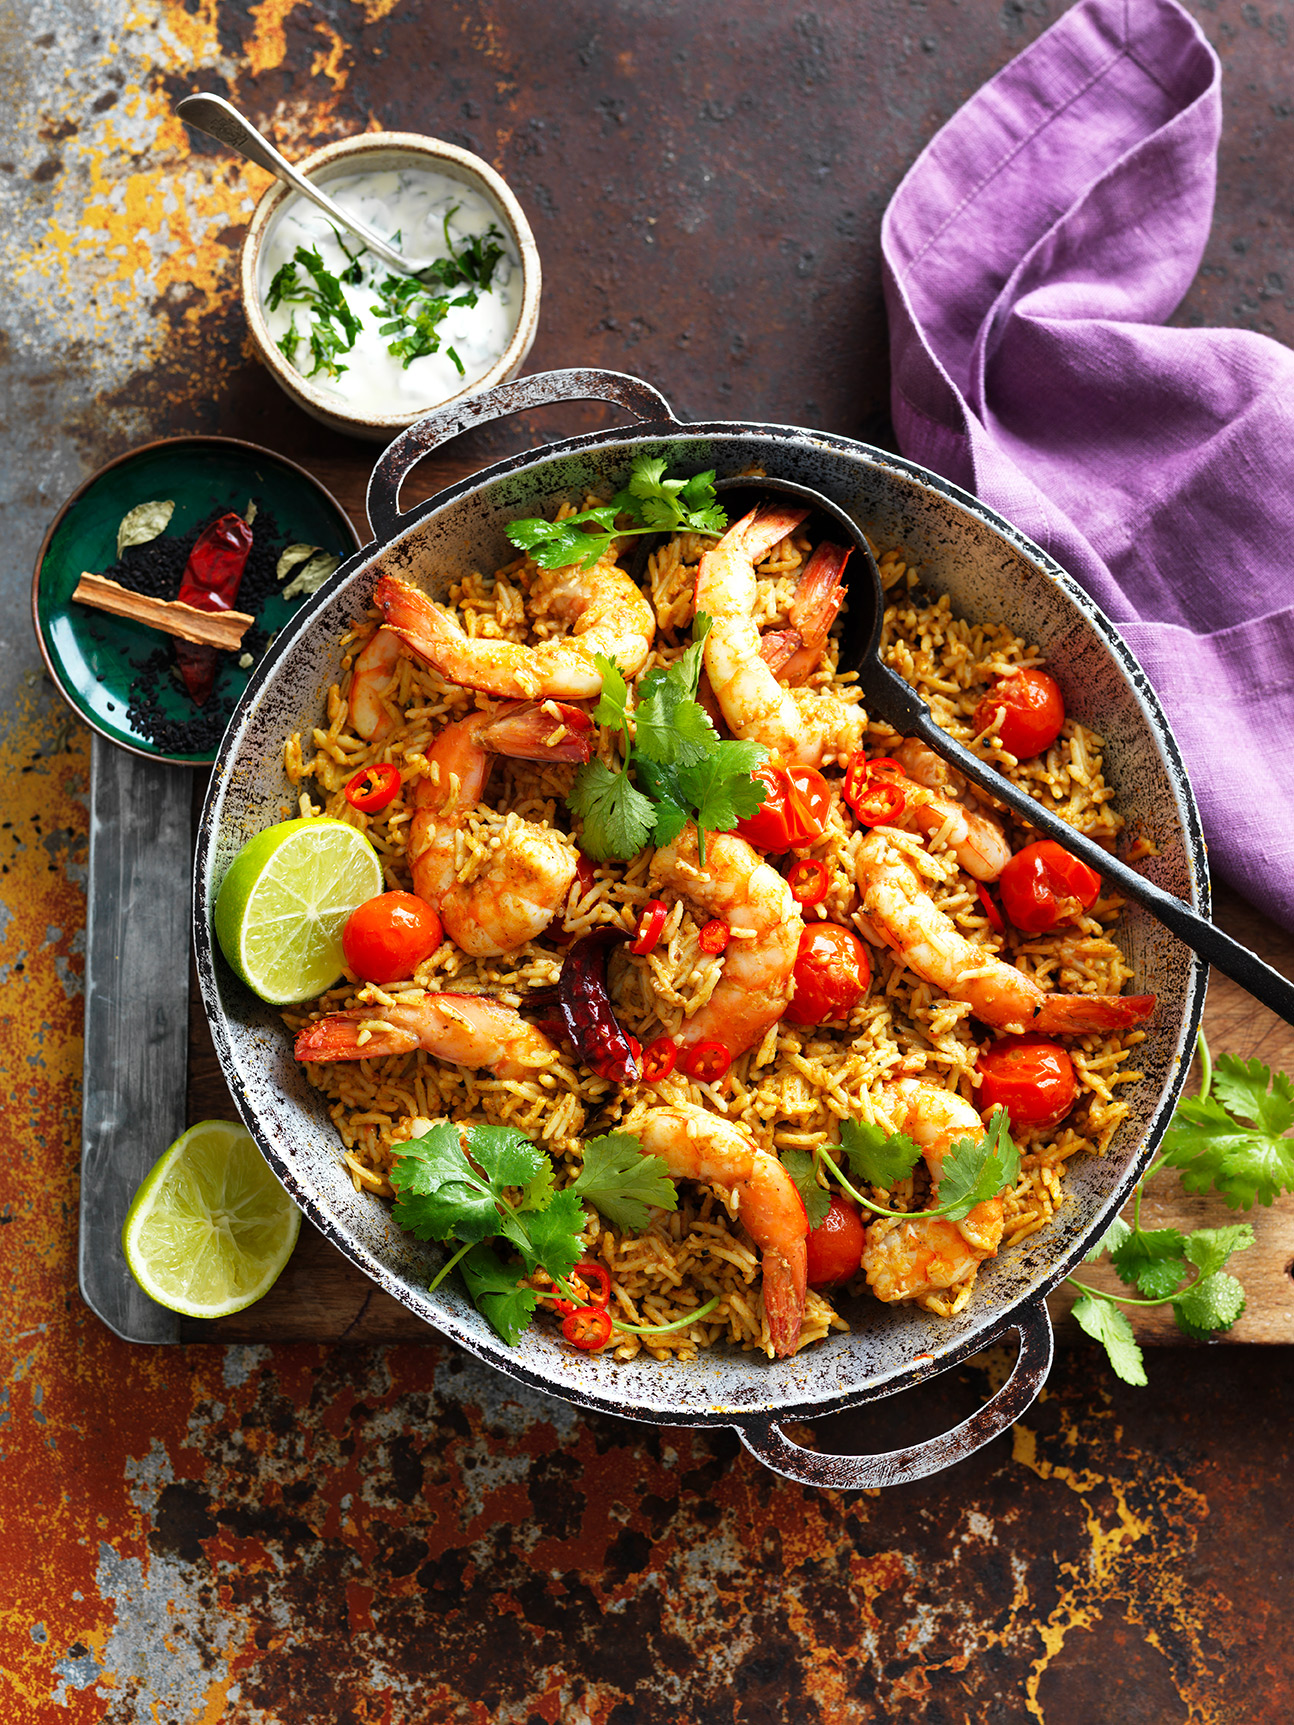 This easy One-pan Indian Prawn Curry Recipe is ready in 30 minutes for a quick weeknight dinner